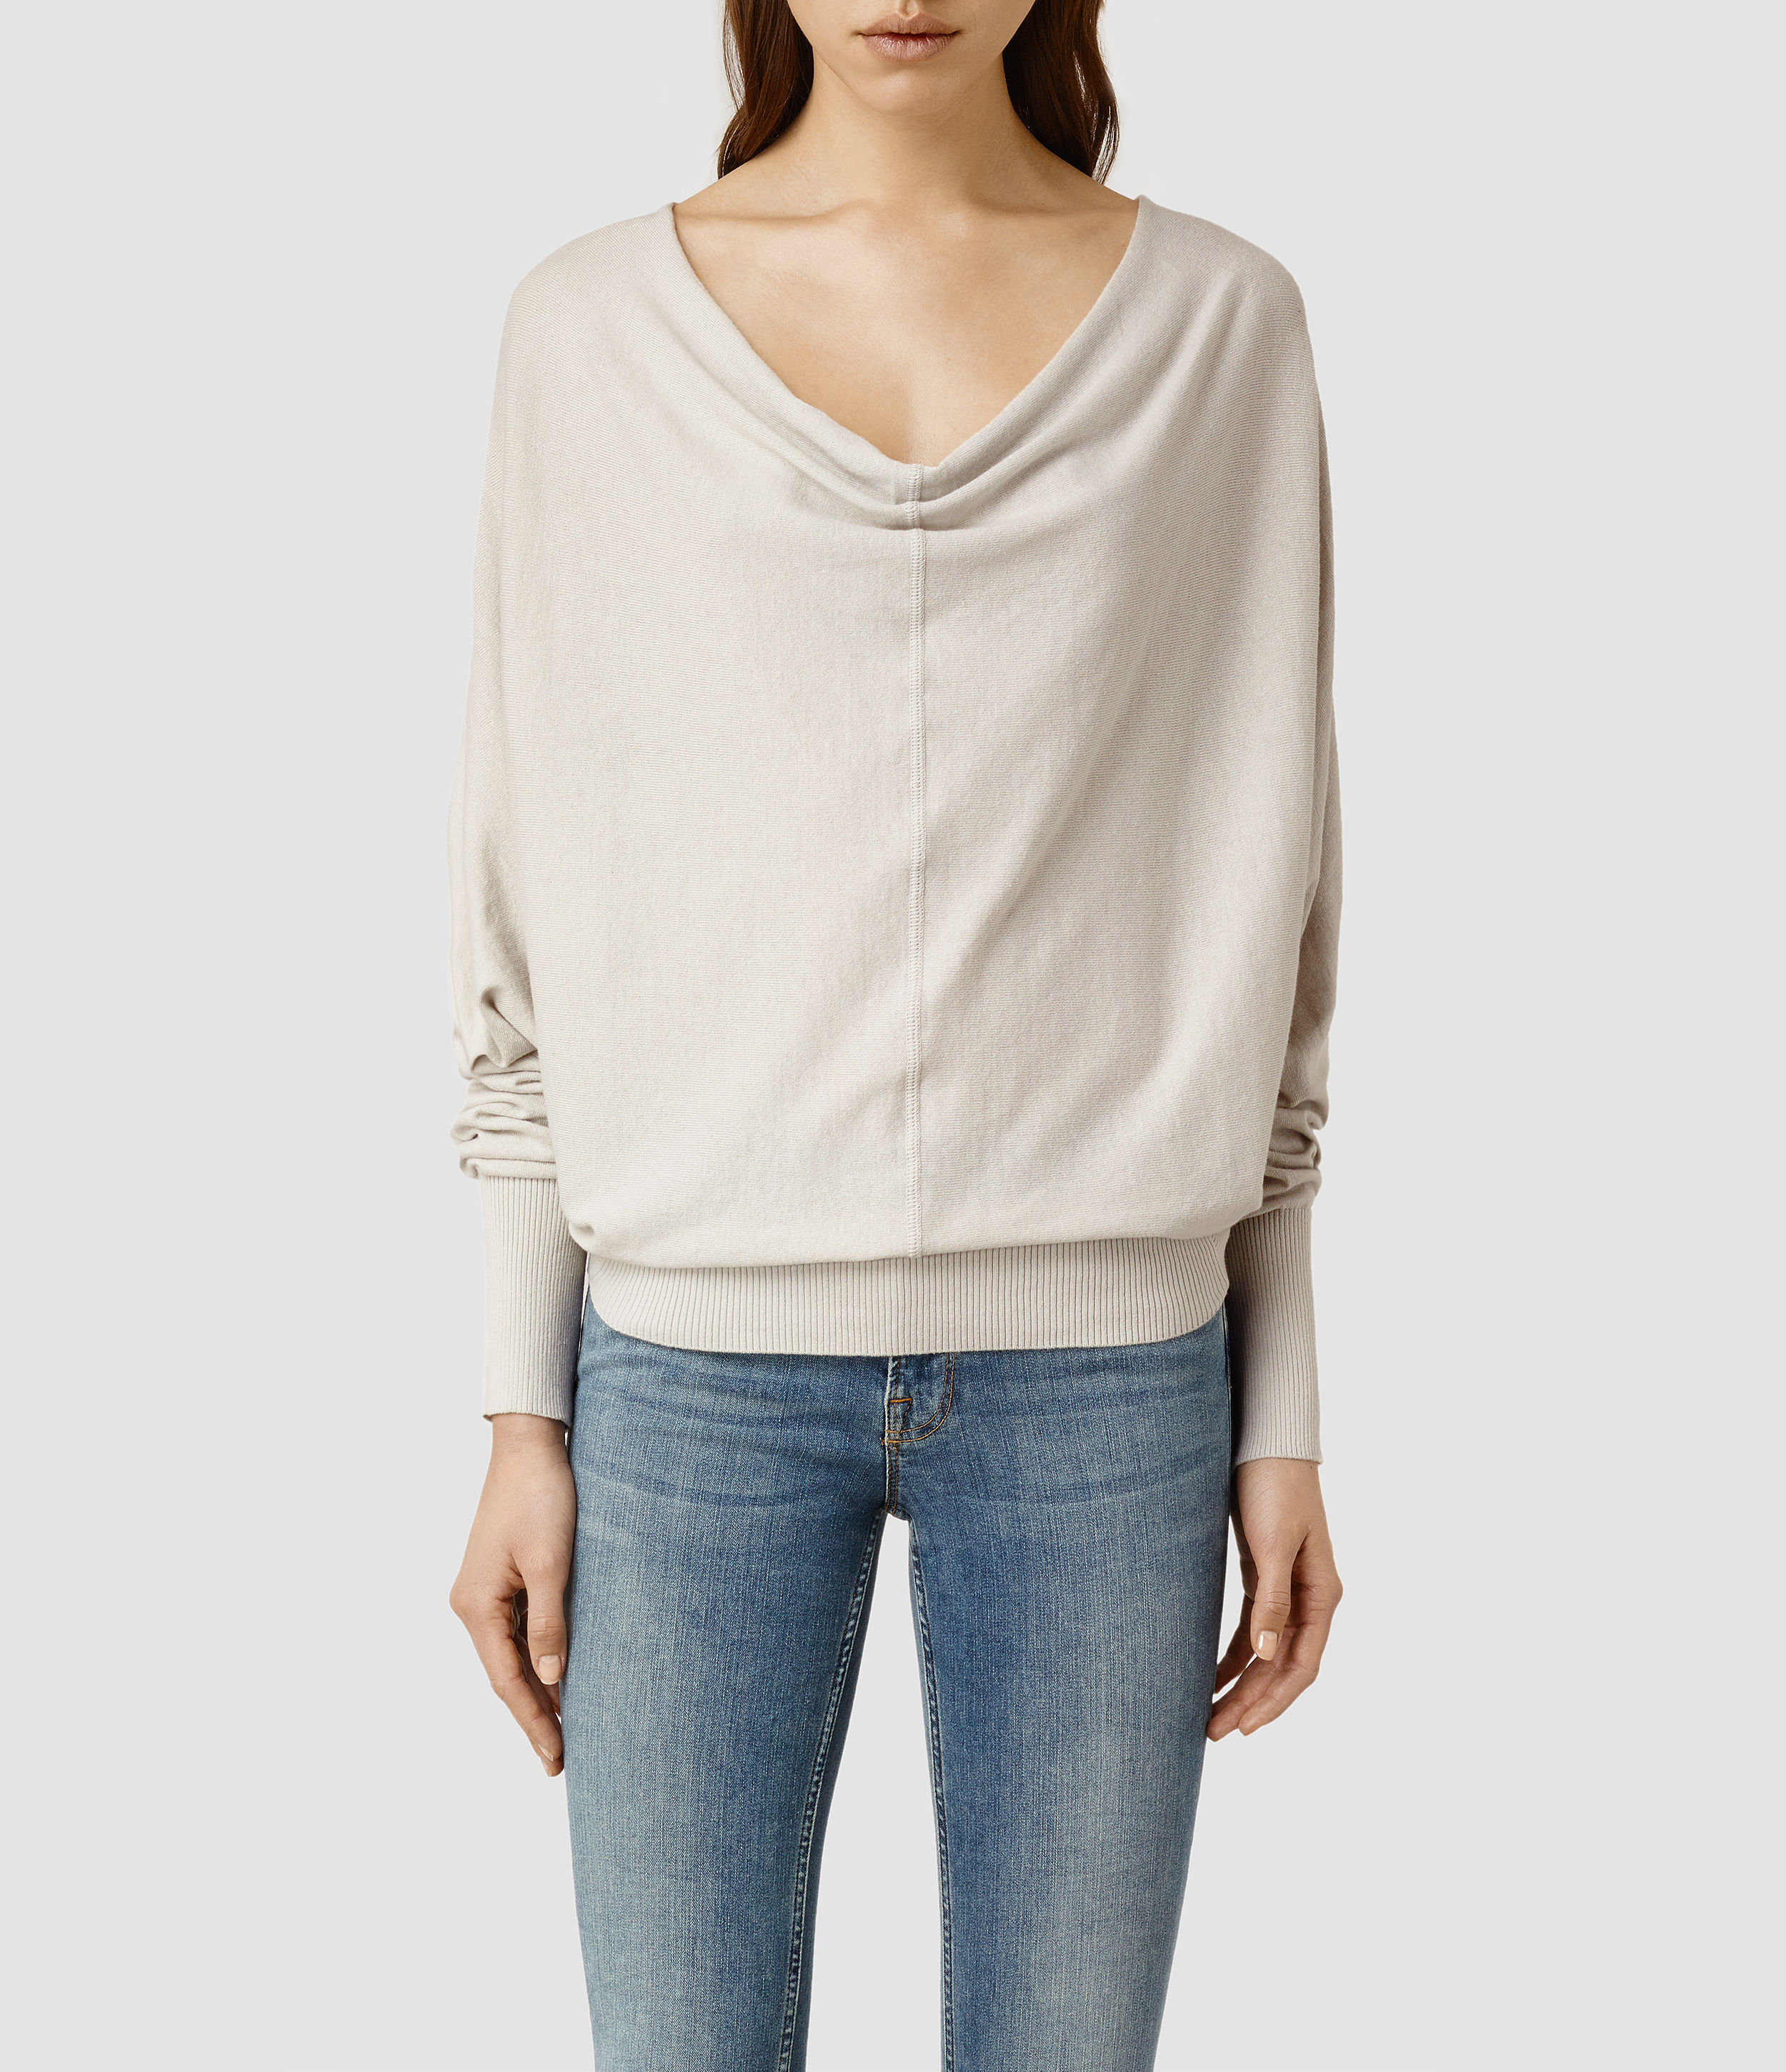 Allsaints Elgar Cowl Neck Sweater Usa Usa in White | Lyst